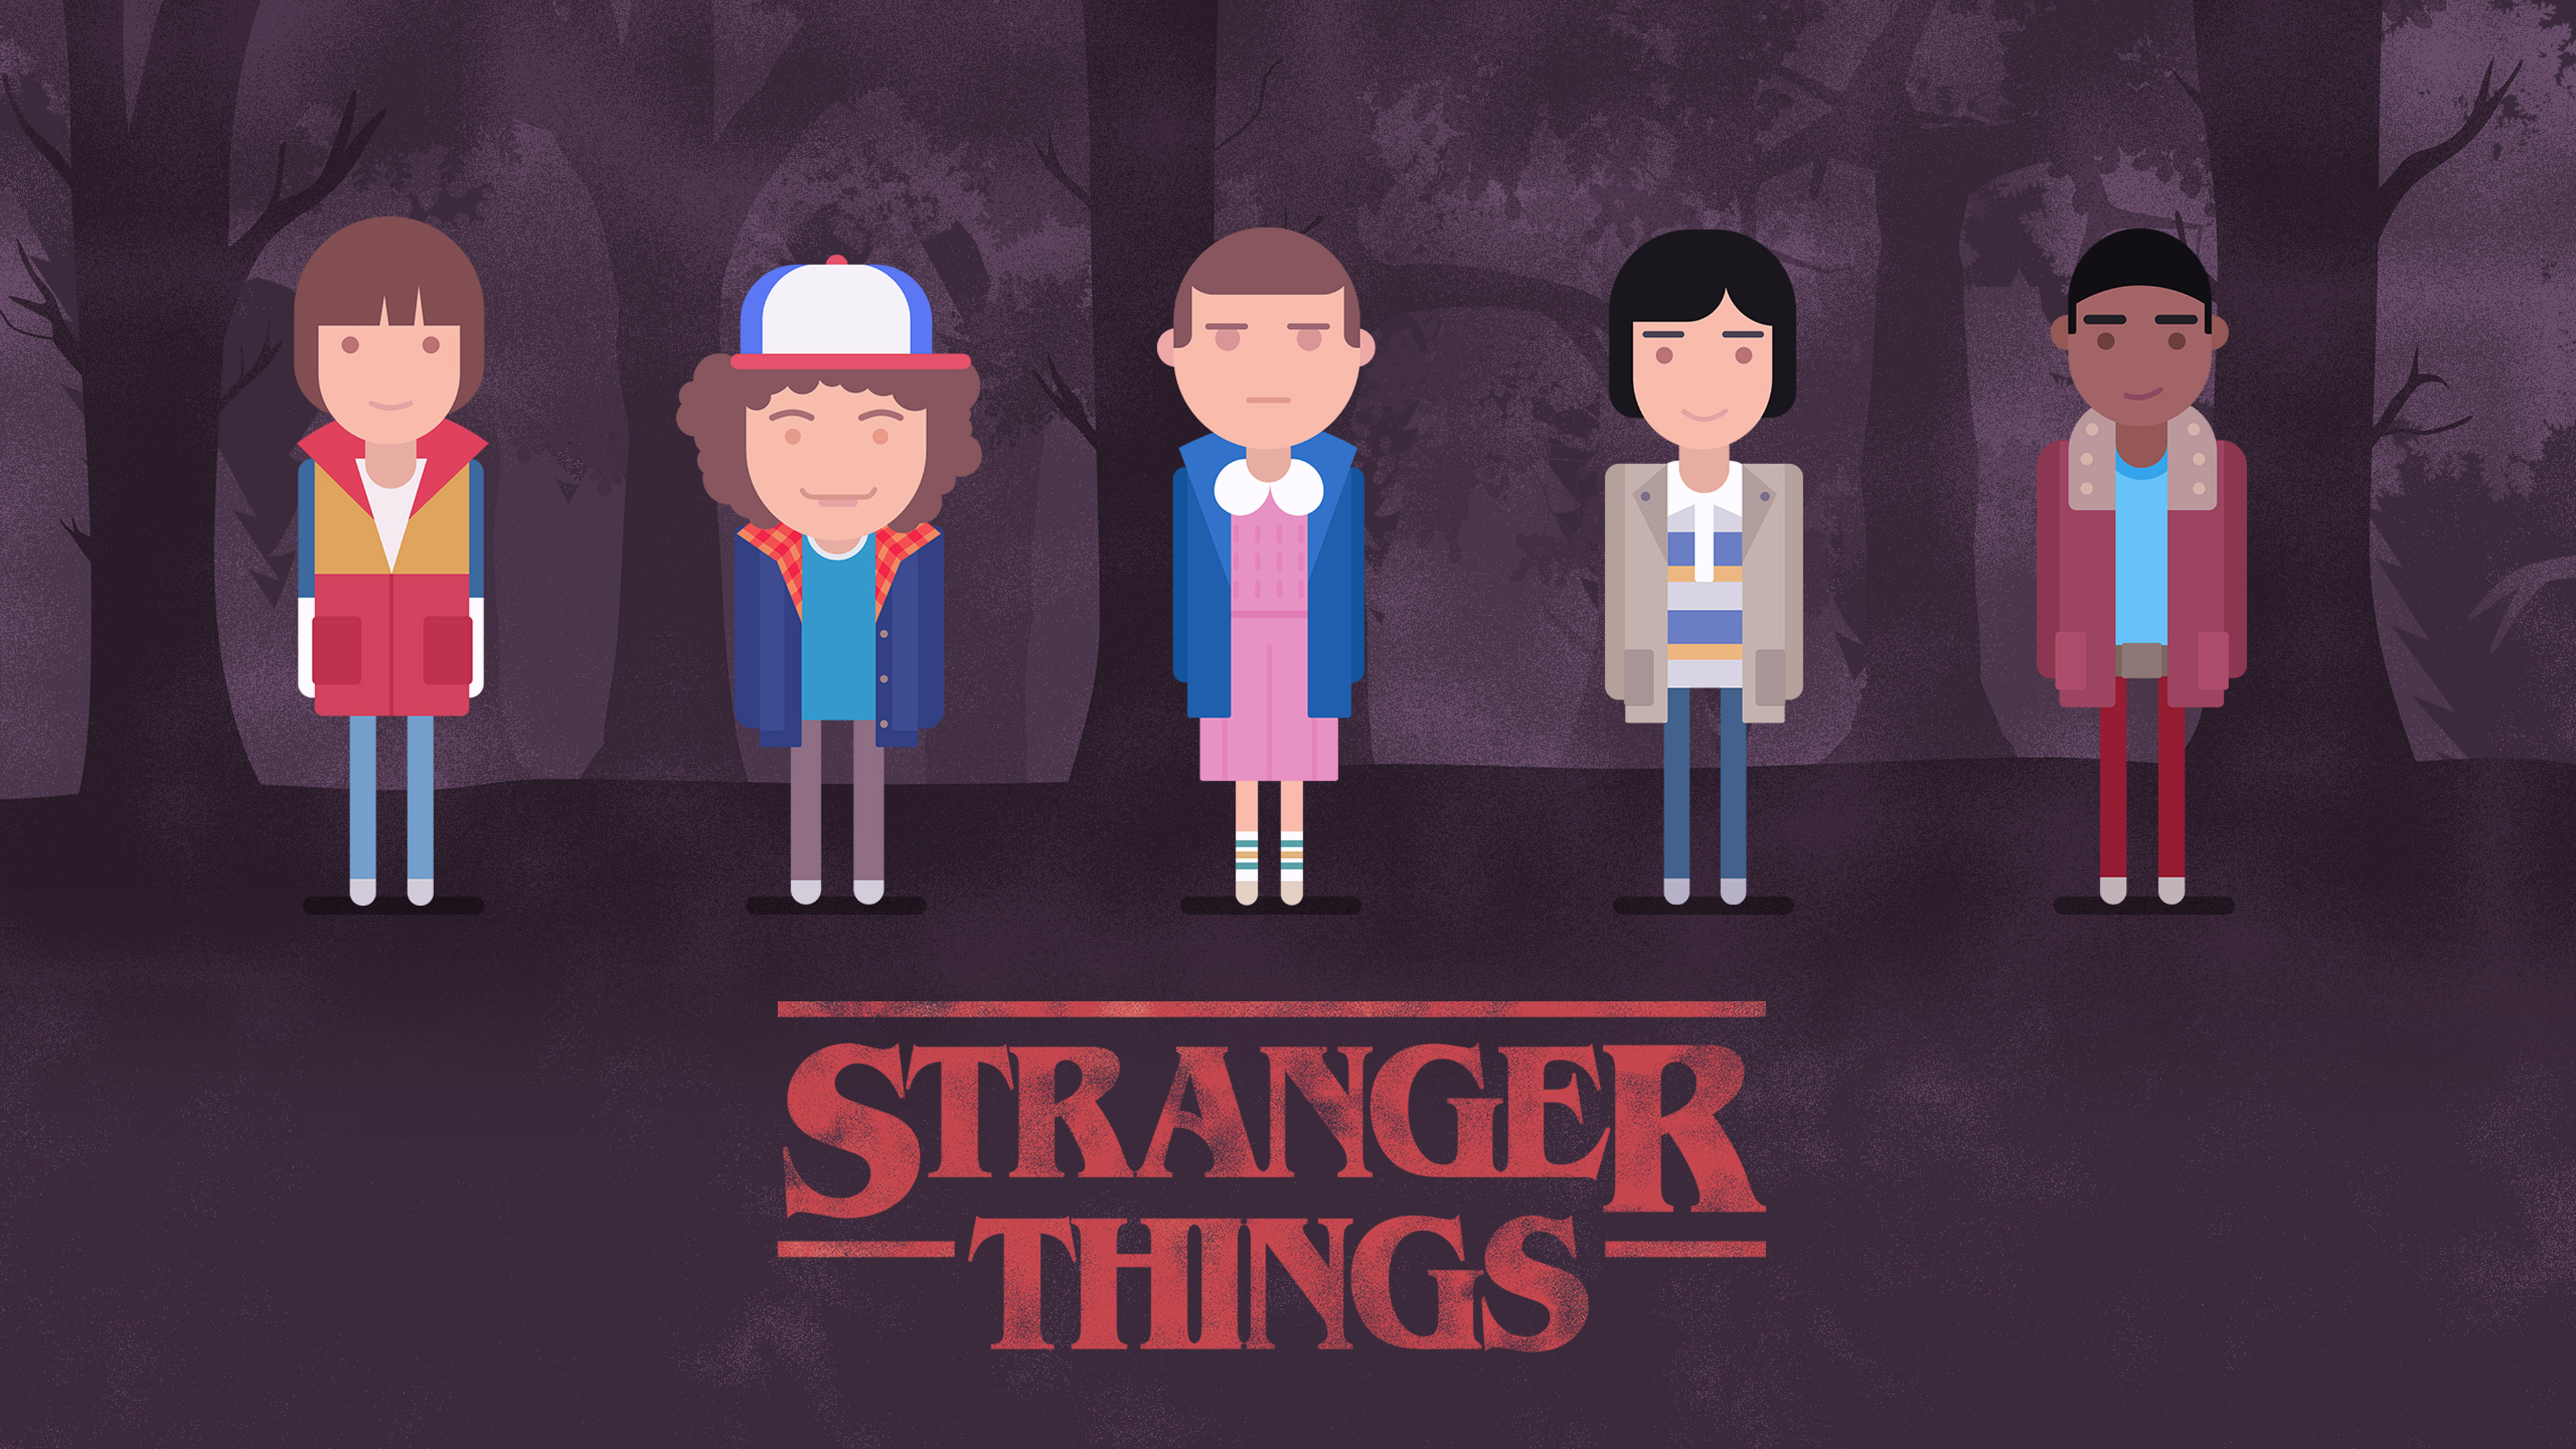 Stranger Things Minimalism 4k Hd Tv Shows 4k Wallpapers